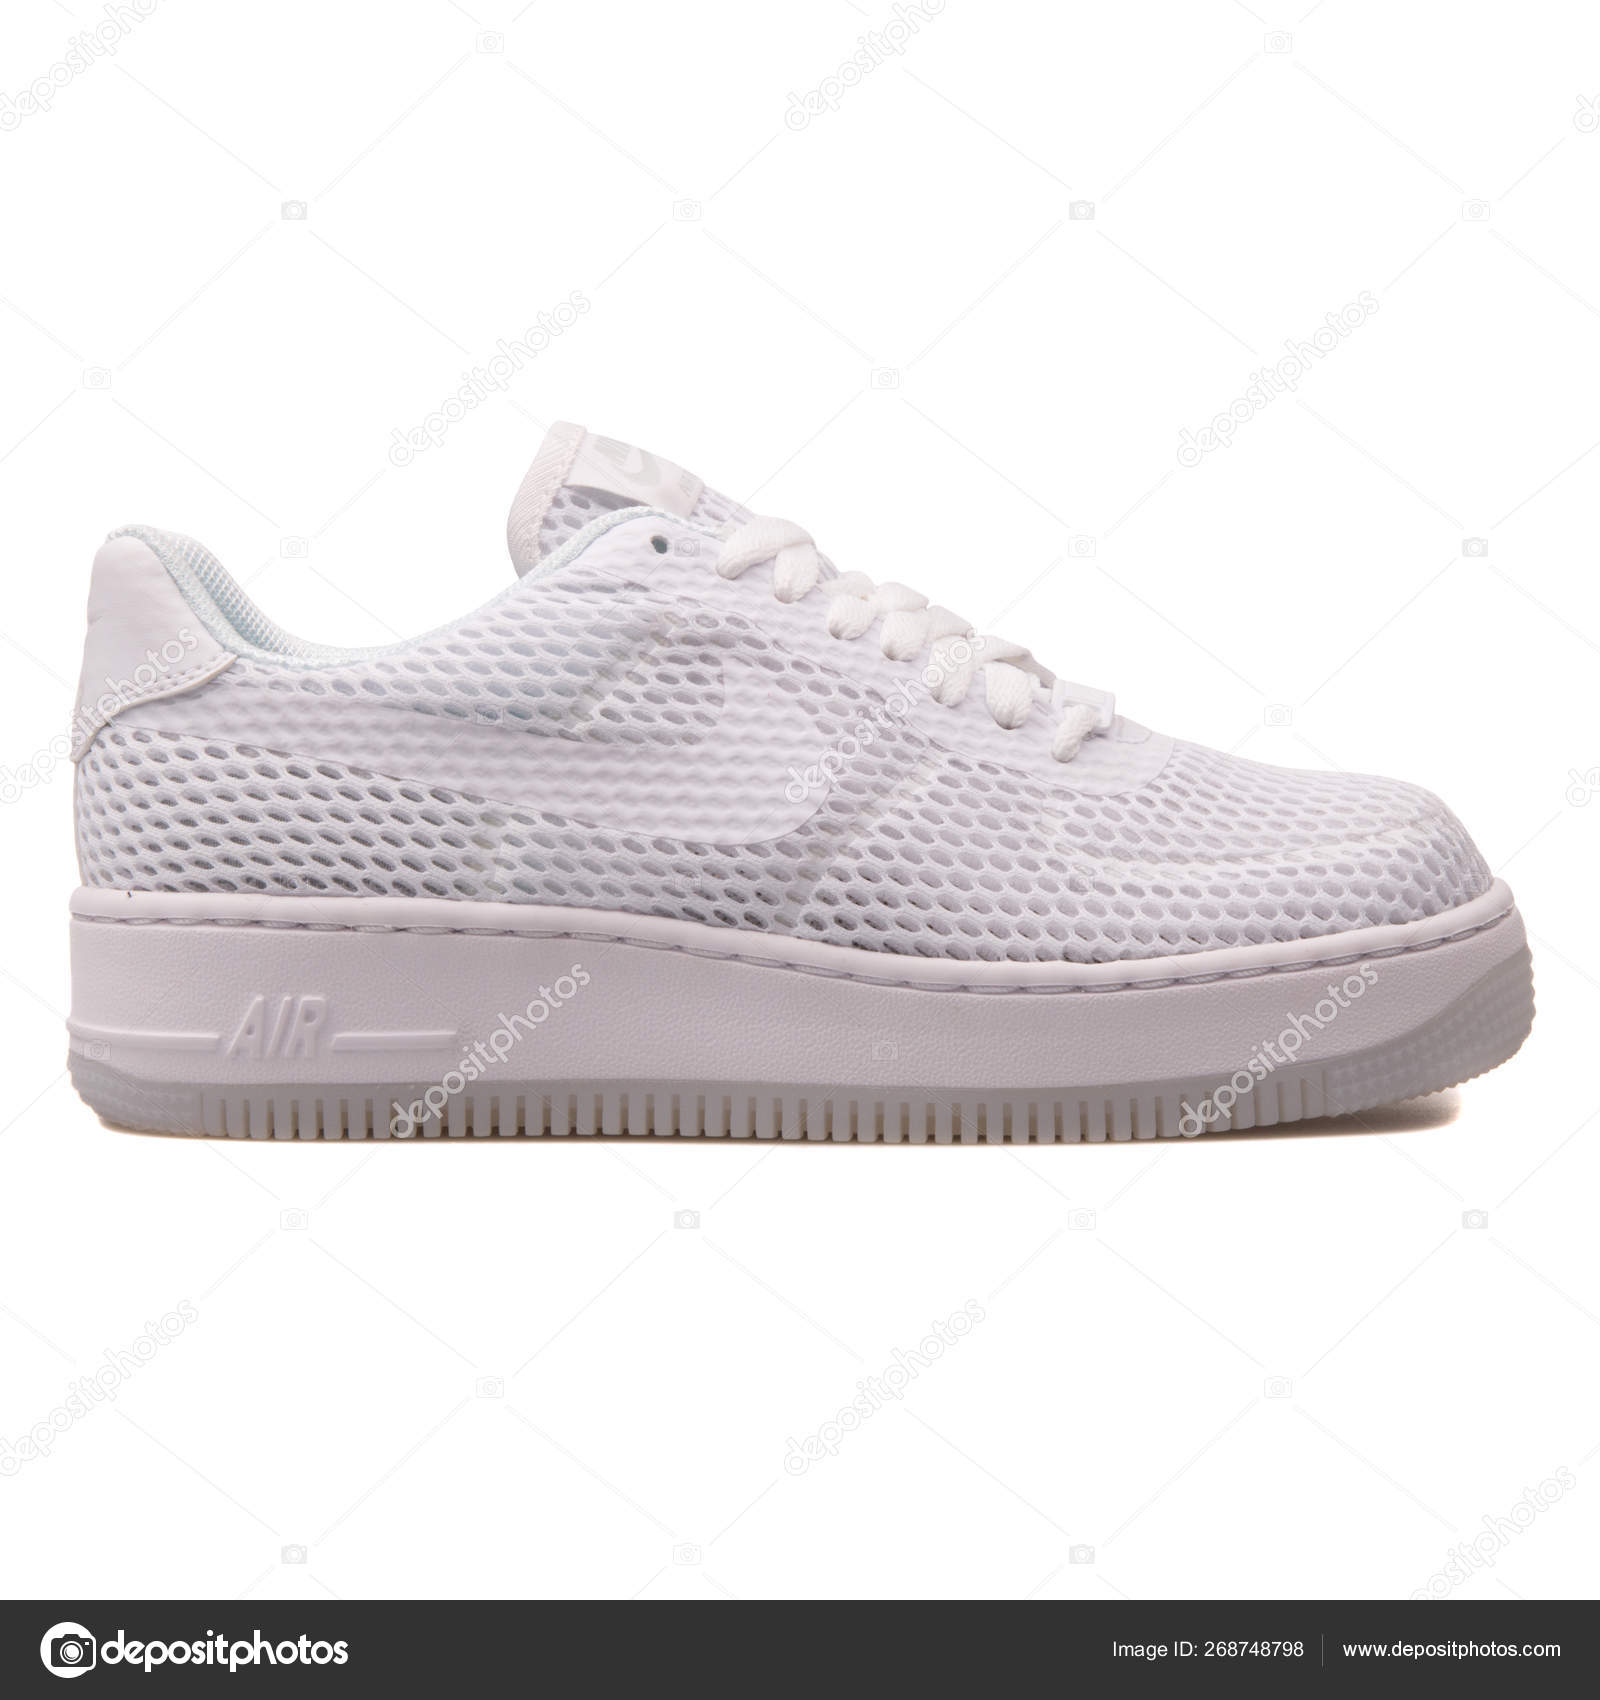 mineral Gastos calificación  Nike Air Force 1 Low Upstep BR white sneaker – Stock Editorial Photo ©  xMarshallfilms #268748798